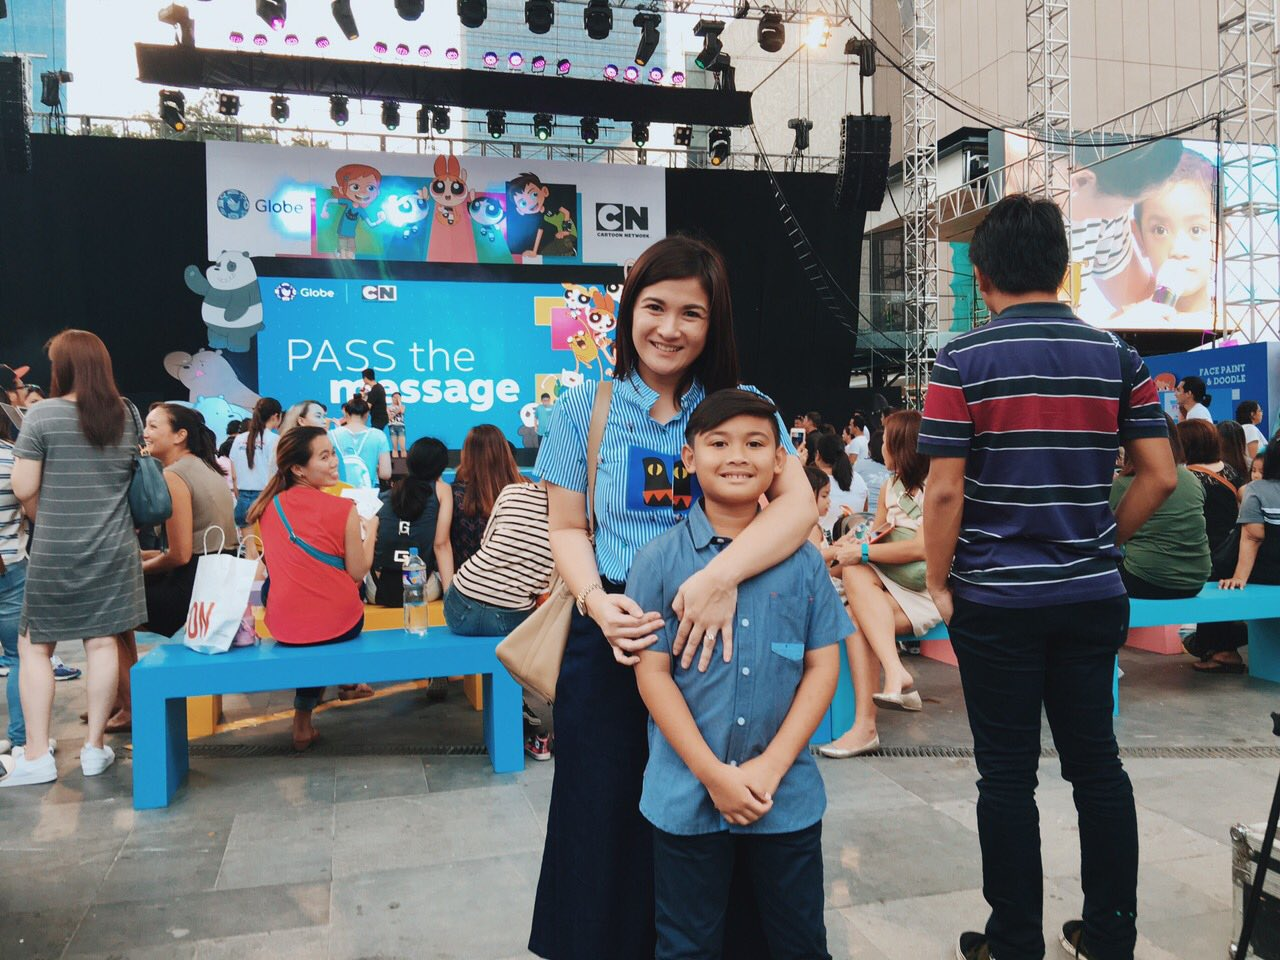 Globe provides app enhancement to 'Cartoon Network Watch and